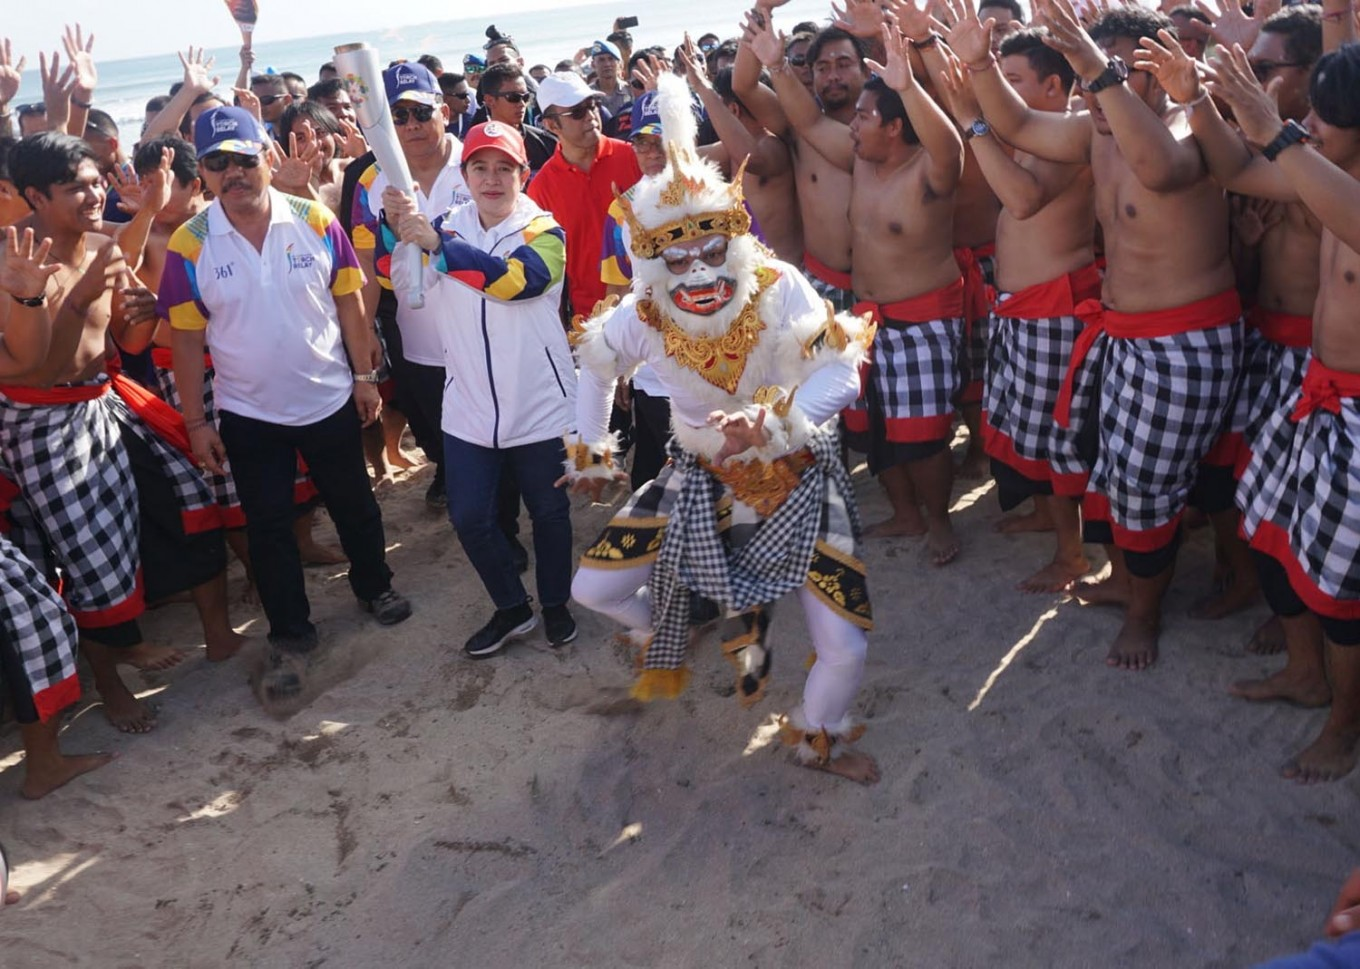 Welcome to Bali: Coordinating Human Development and Culture Minister Puan Maharani carries the Asian Games torch at Kuta Beach, Bali, as part of the Asian Games torch relay on Monday, July 23, 2018. The torch was welcomed by kecak dancers and will be carried around the resort island for two days before being taken to West Nusa Tenggara on Wednesday. JP/ Ni Komang Erviani